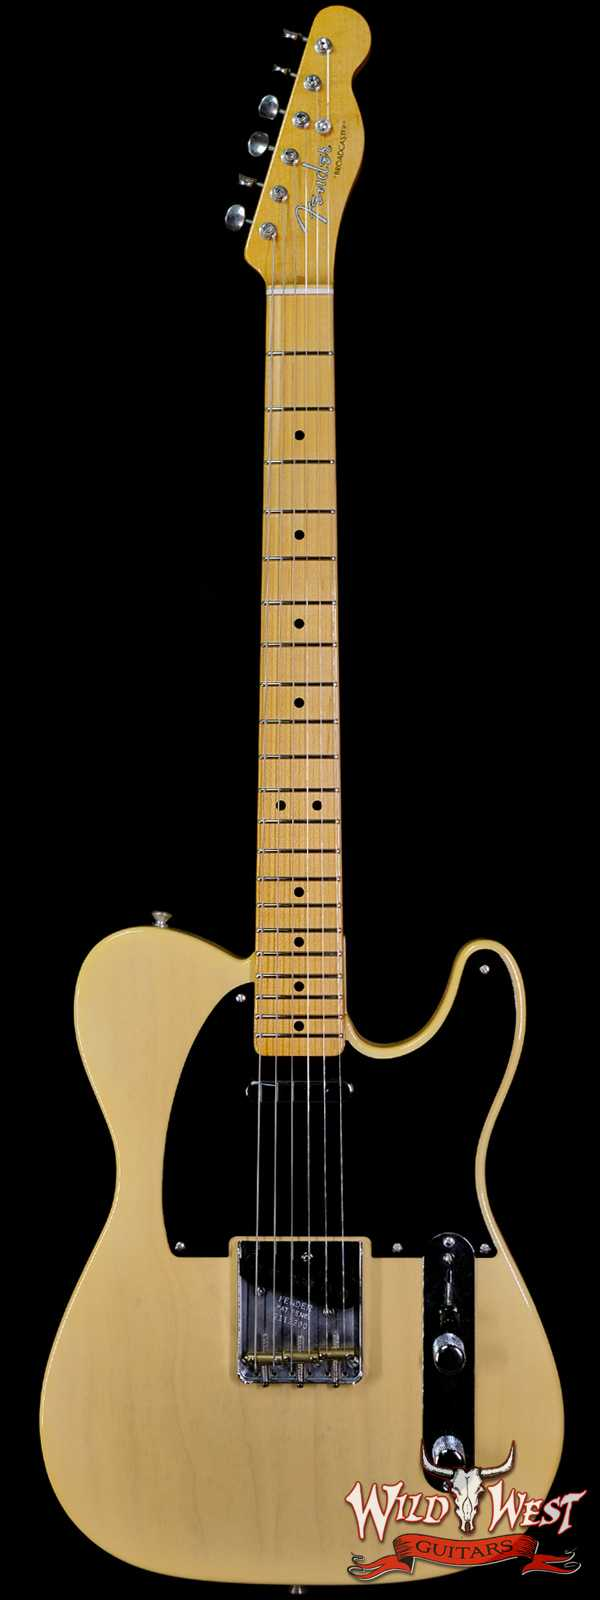 Fender Custom Shop 70th Anniversary Broadcaster NOS Time Capsule Hand-Wound Pickups Nocaster Blonde